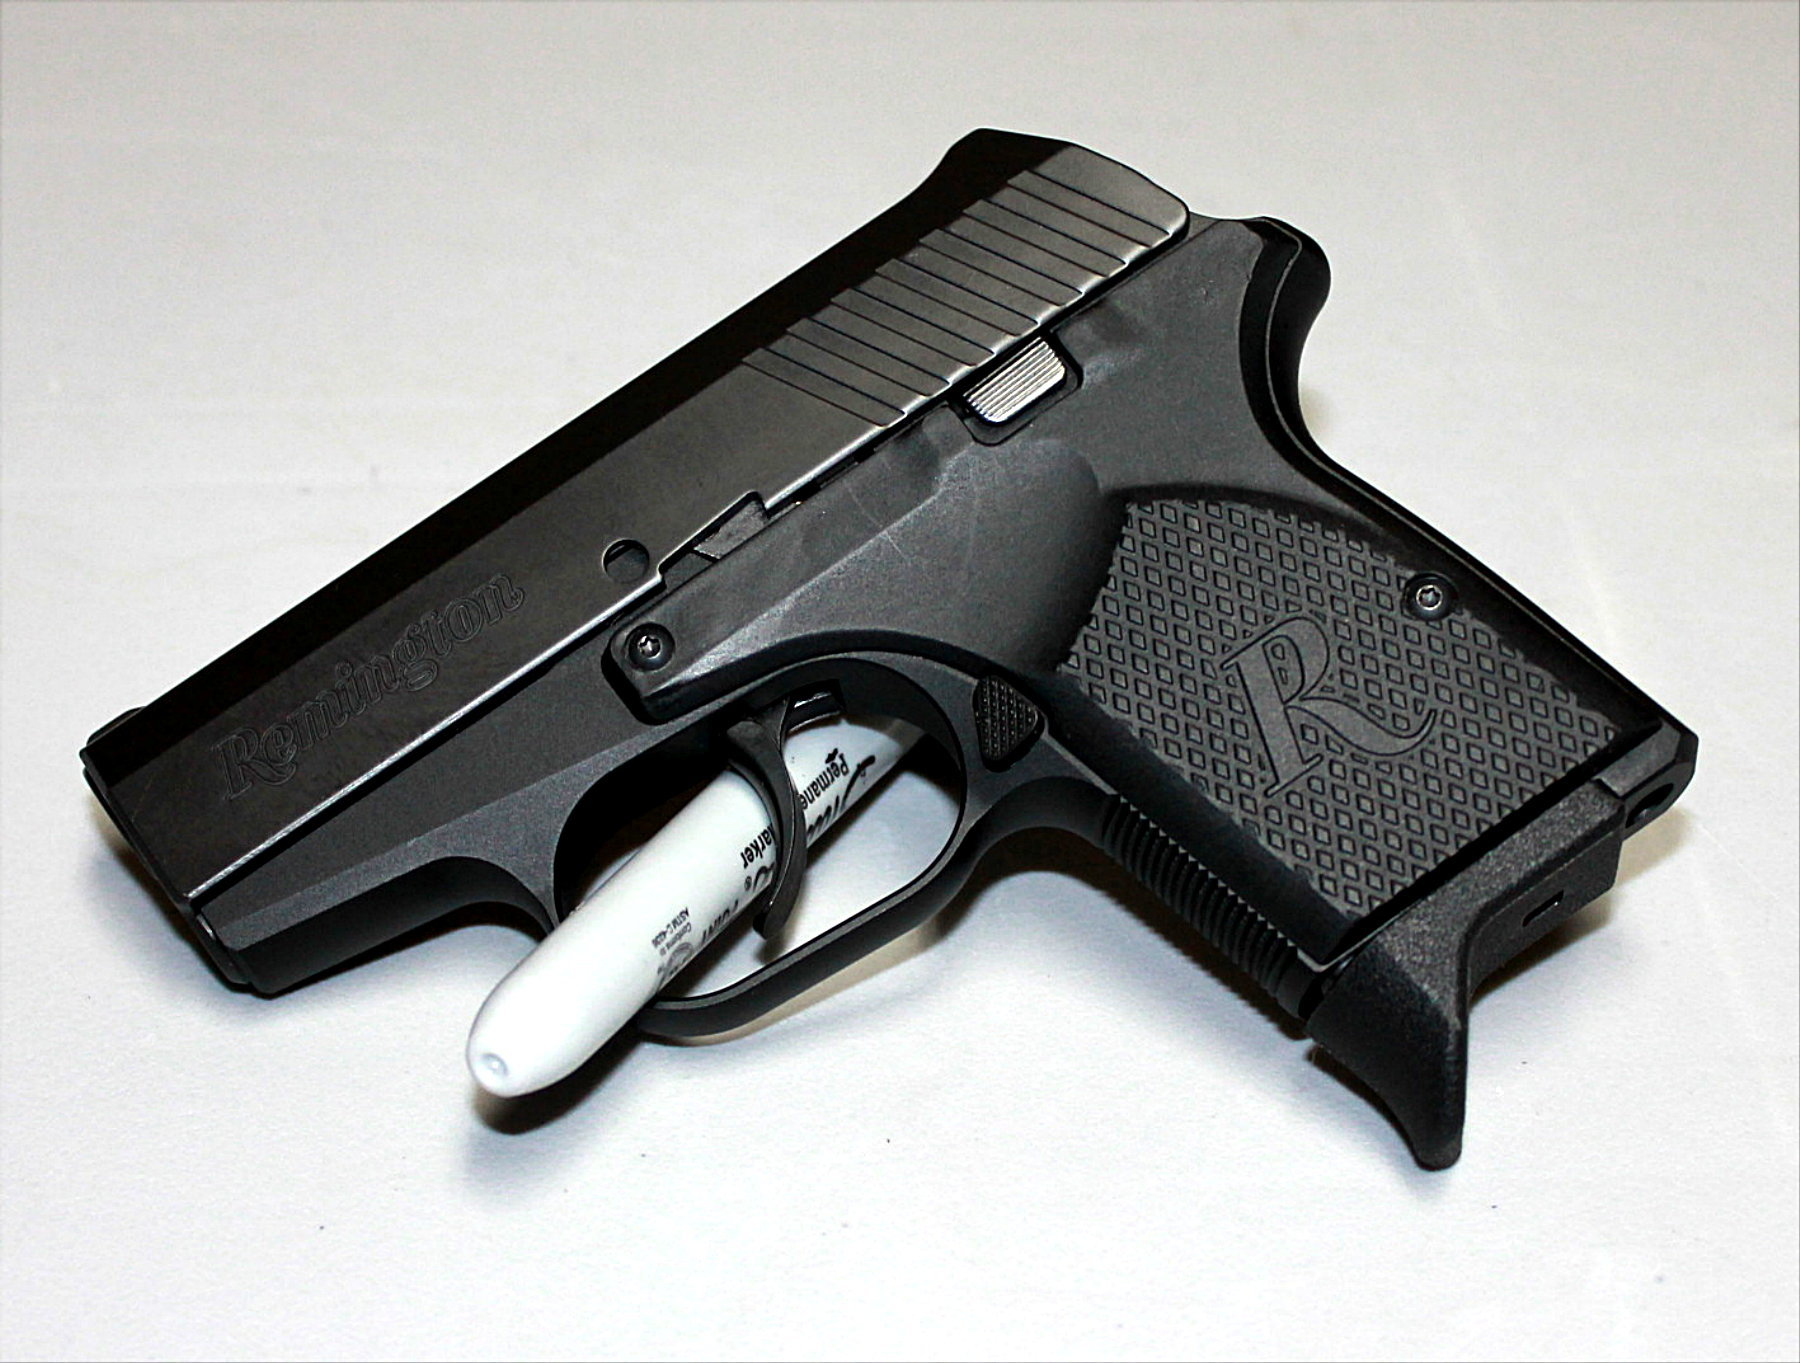 REMINGTON RM380 380 ACP SEMI AUTO PISTOL